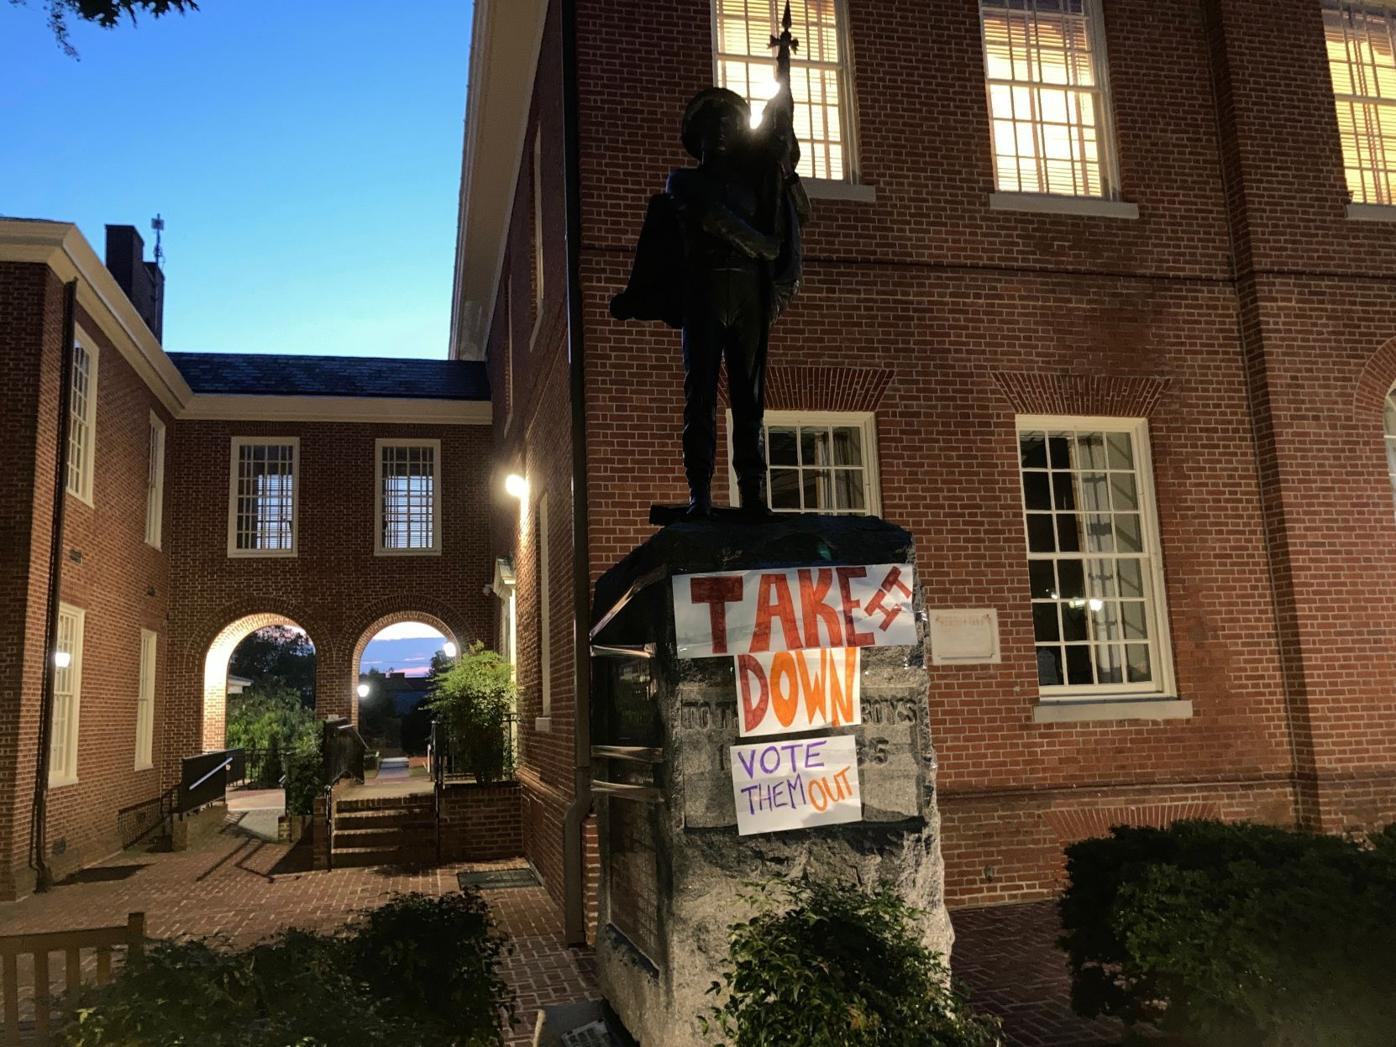 Talbot Boys monument survives calls for removal